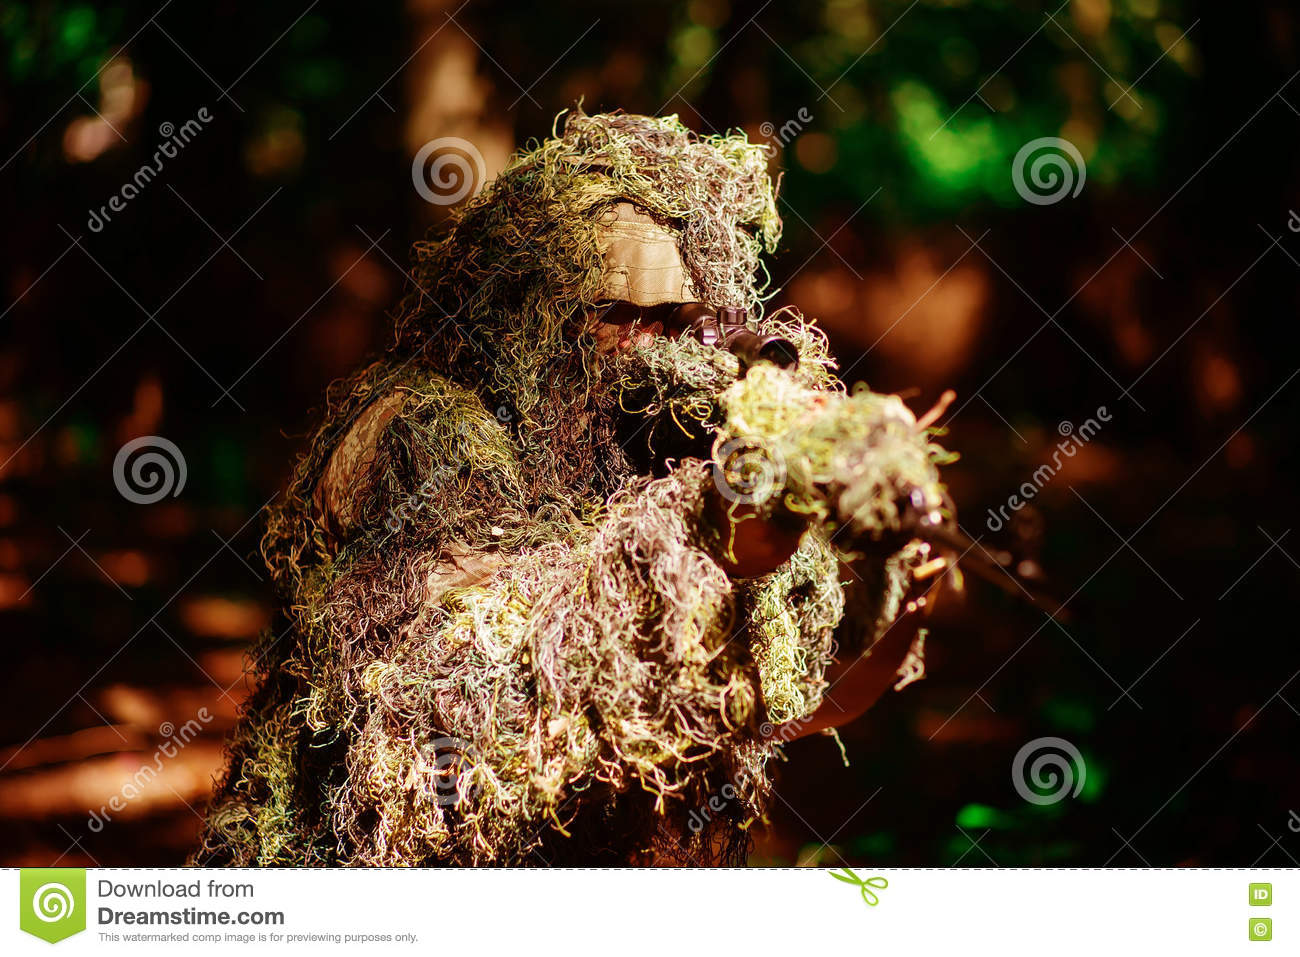 72 Ghillie Suit Wallpapers On Wallpaperplay: Sniping Stock Photos